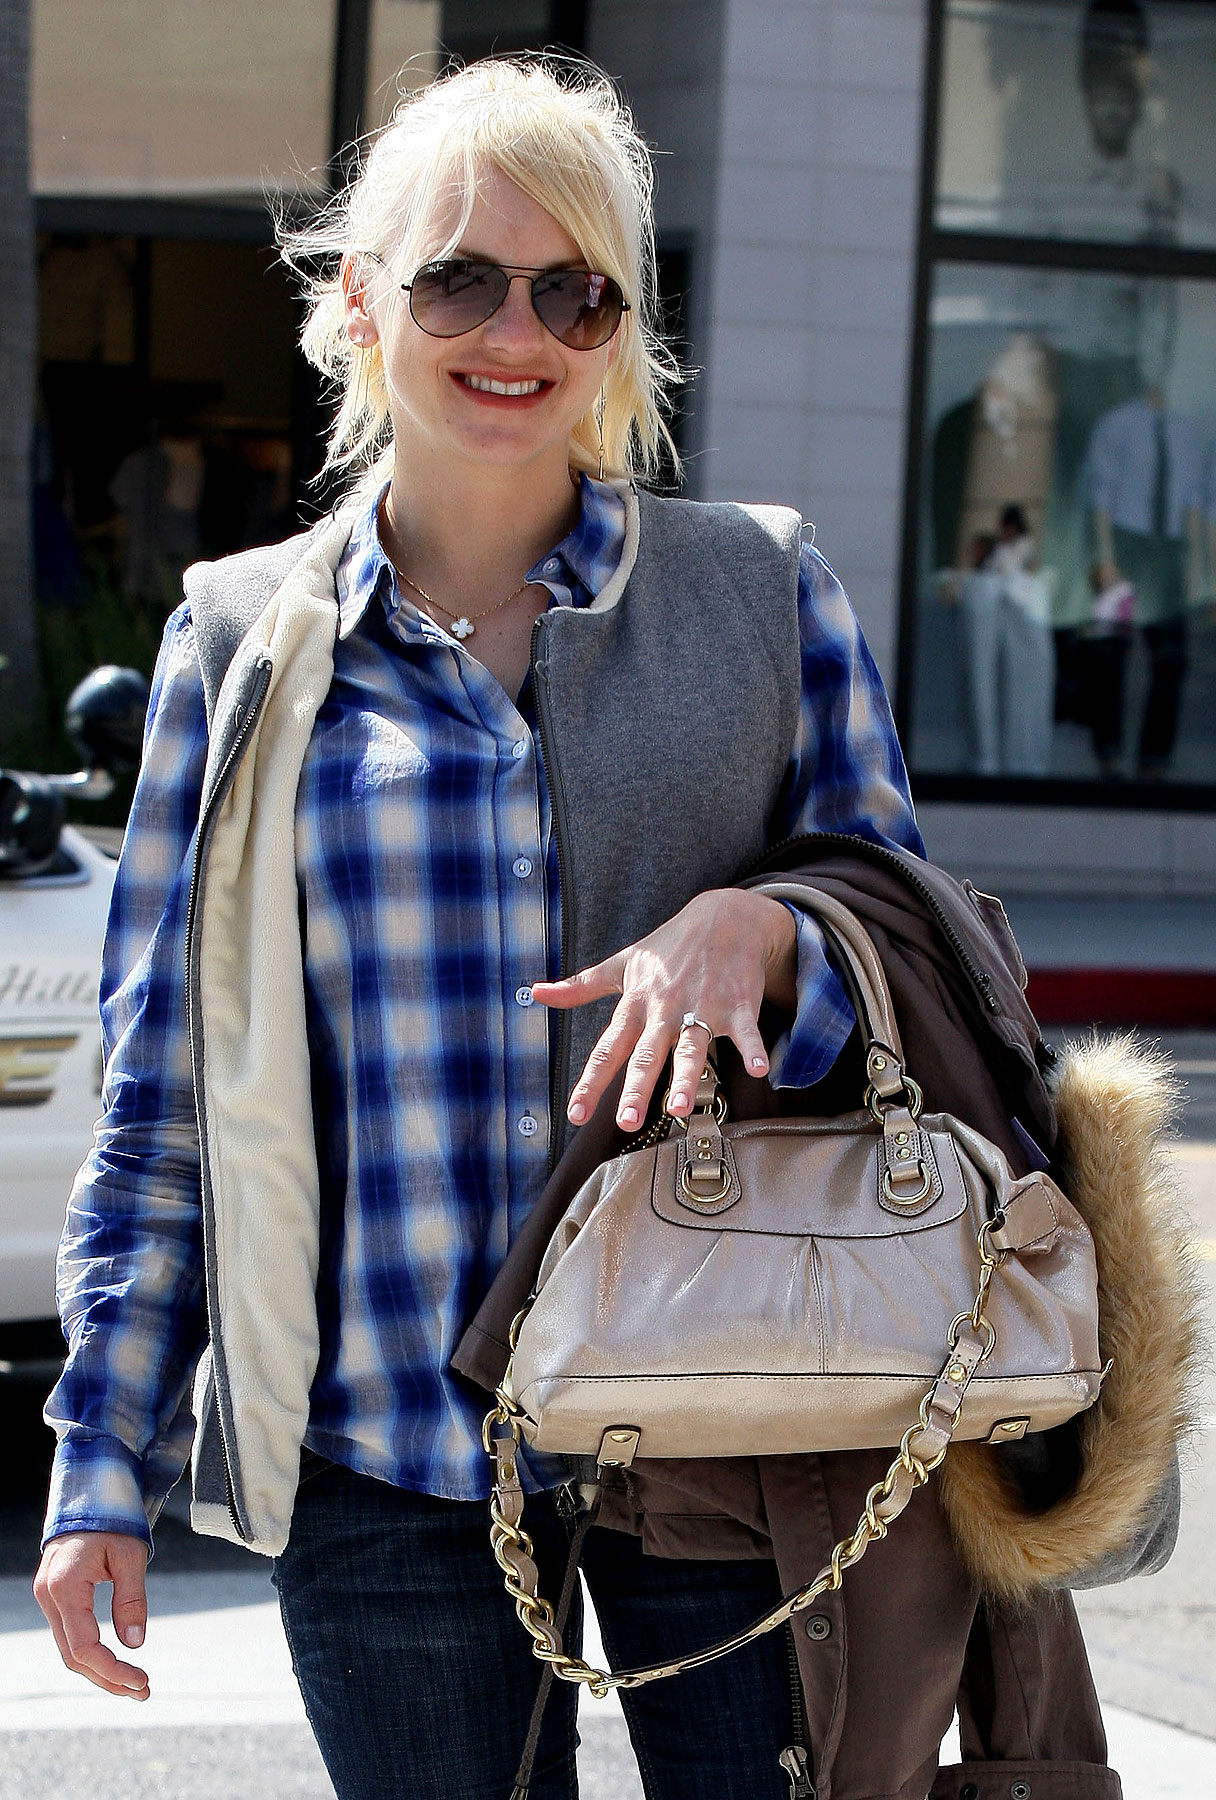 Blinged-Out Lunch for Anna Faris